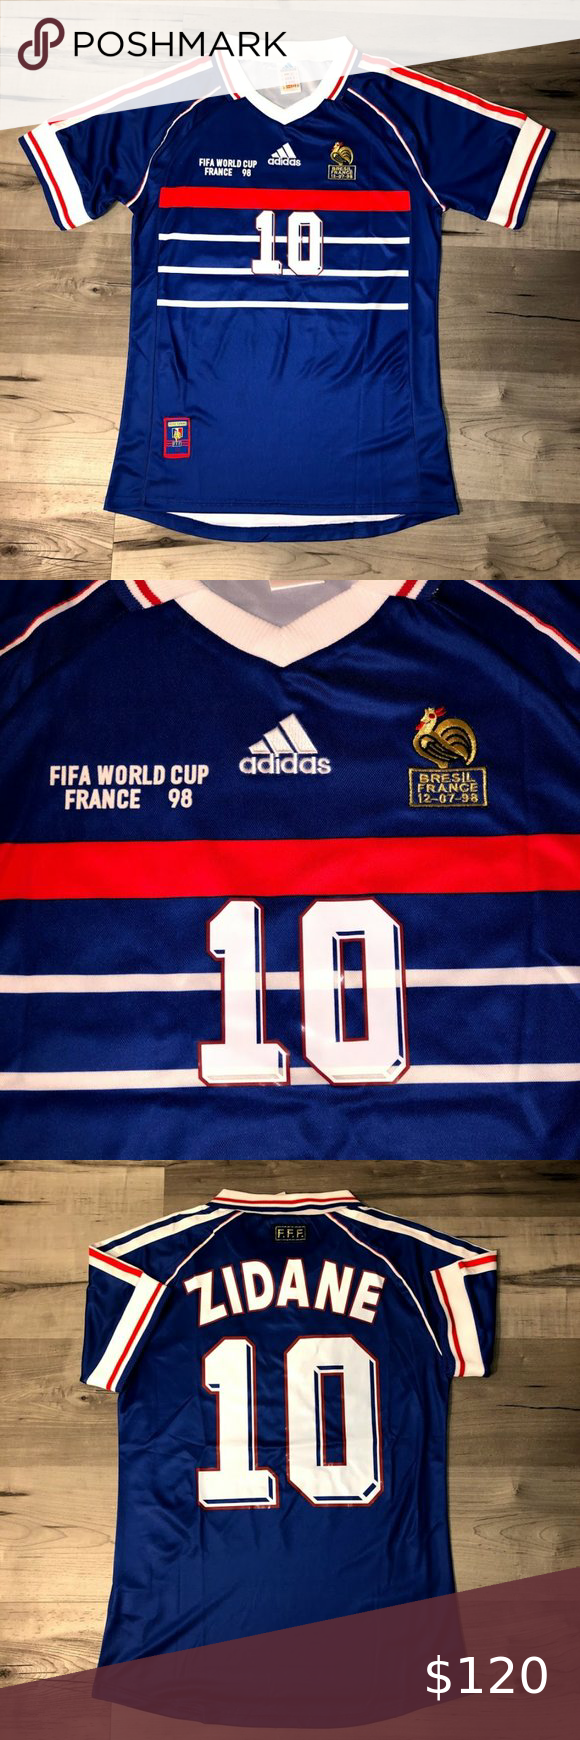 1998 World Cup France 98 Zidane Jersey Vintage Adidas Authentic 1998 World Cup France Zidane Fan Version Home Blue Jersey In 2020 Adidas Shirt Clothes Design Jersey